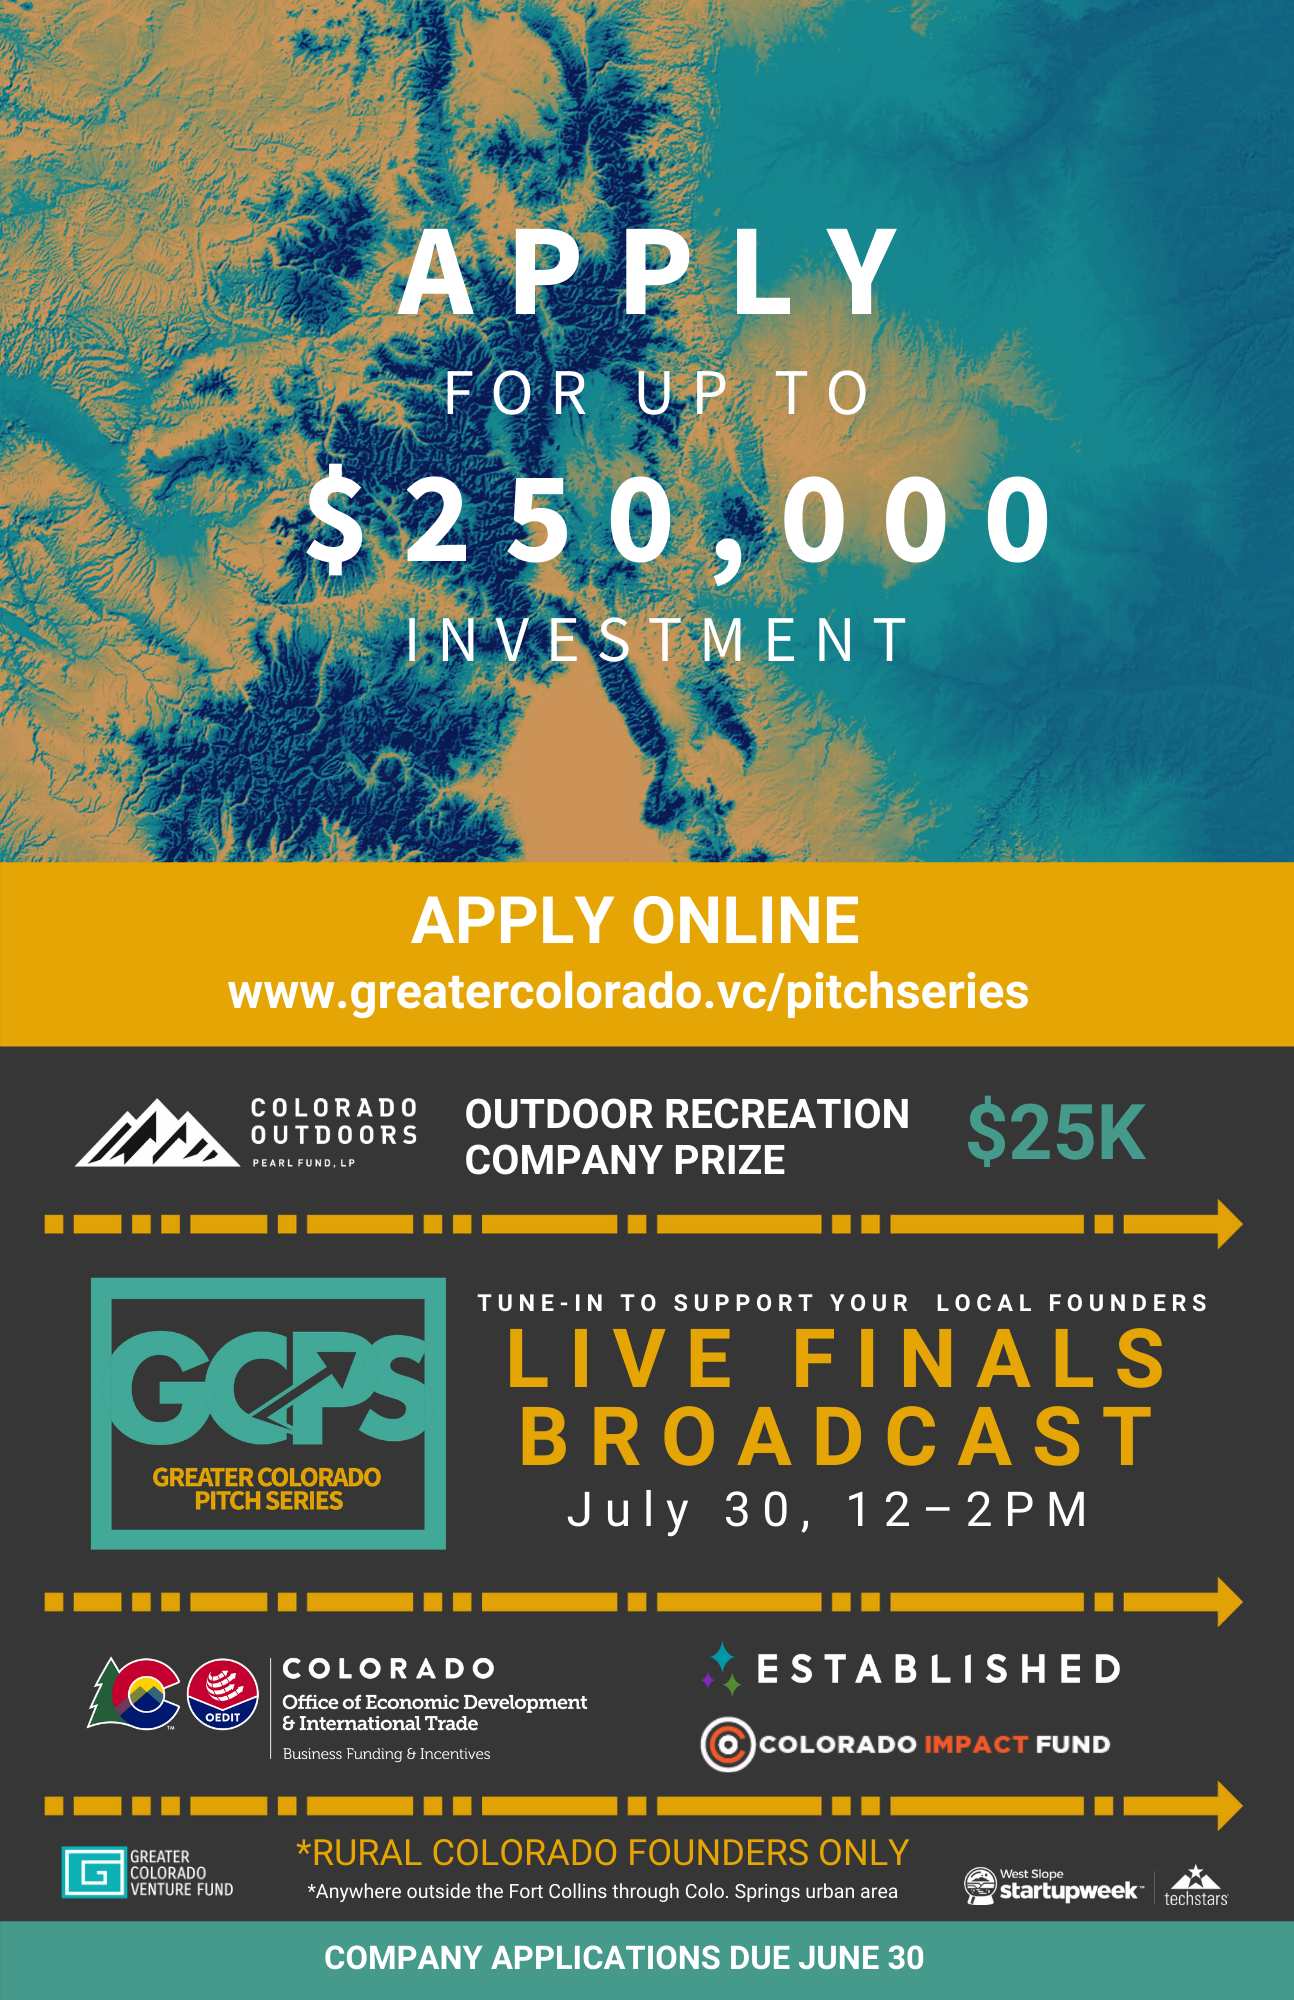 Pitch series poster highlighting sponsors and application date—june 30, broadcast date-july 30